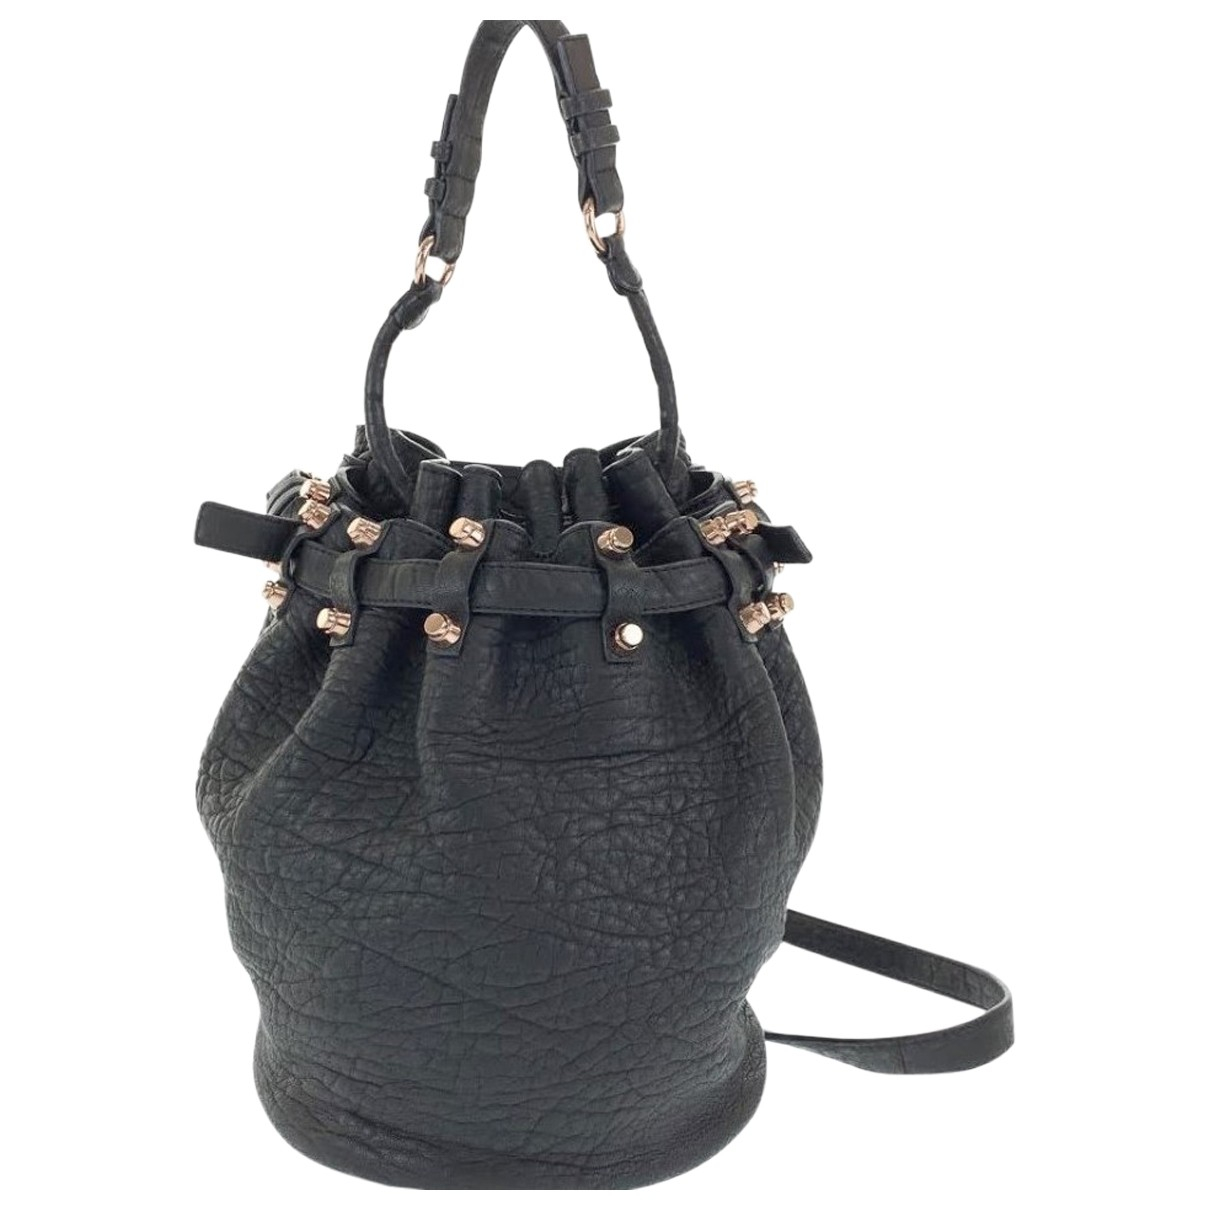 Alexander Wang N Leather handbag for Women N